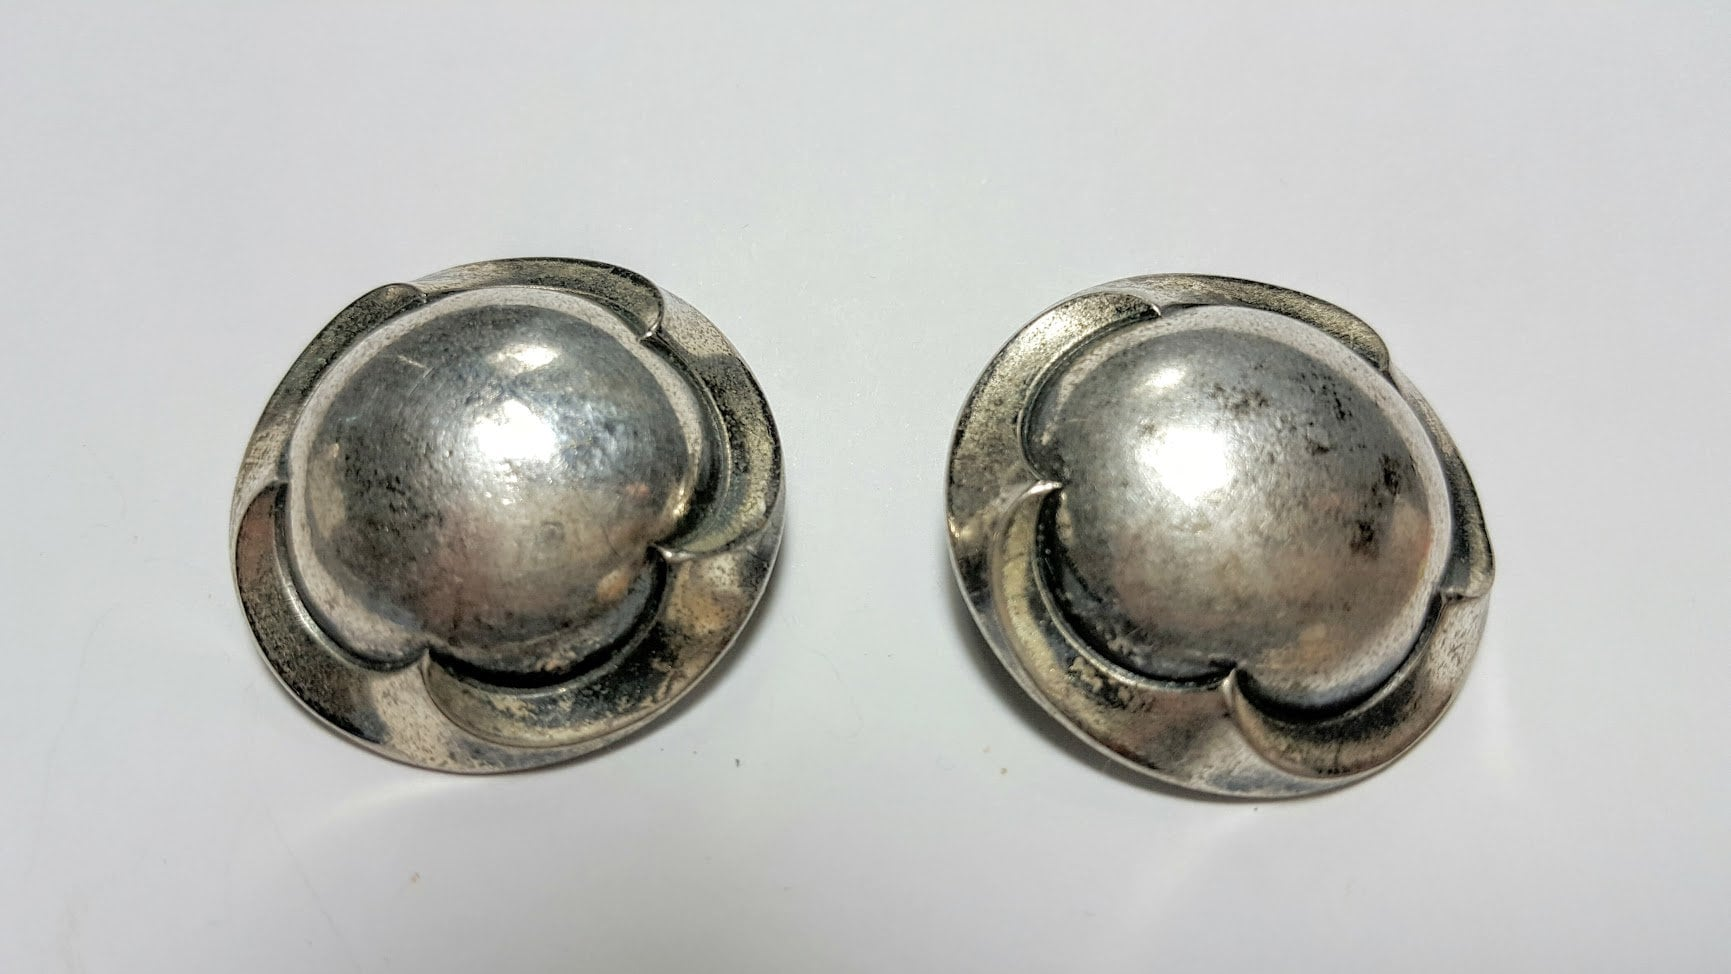 Ermani Bulatti Clip earrings Vintage European Designer